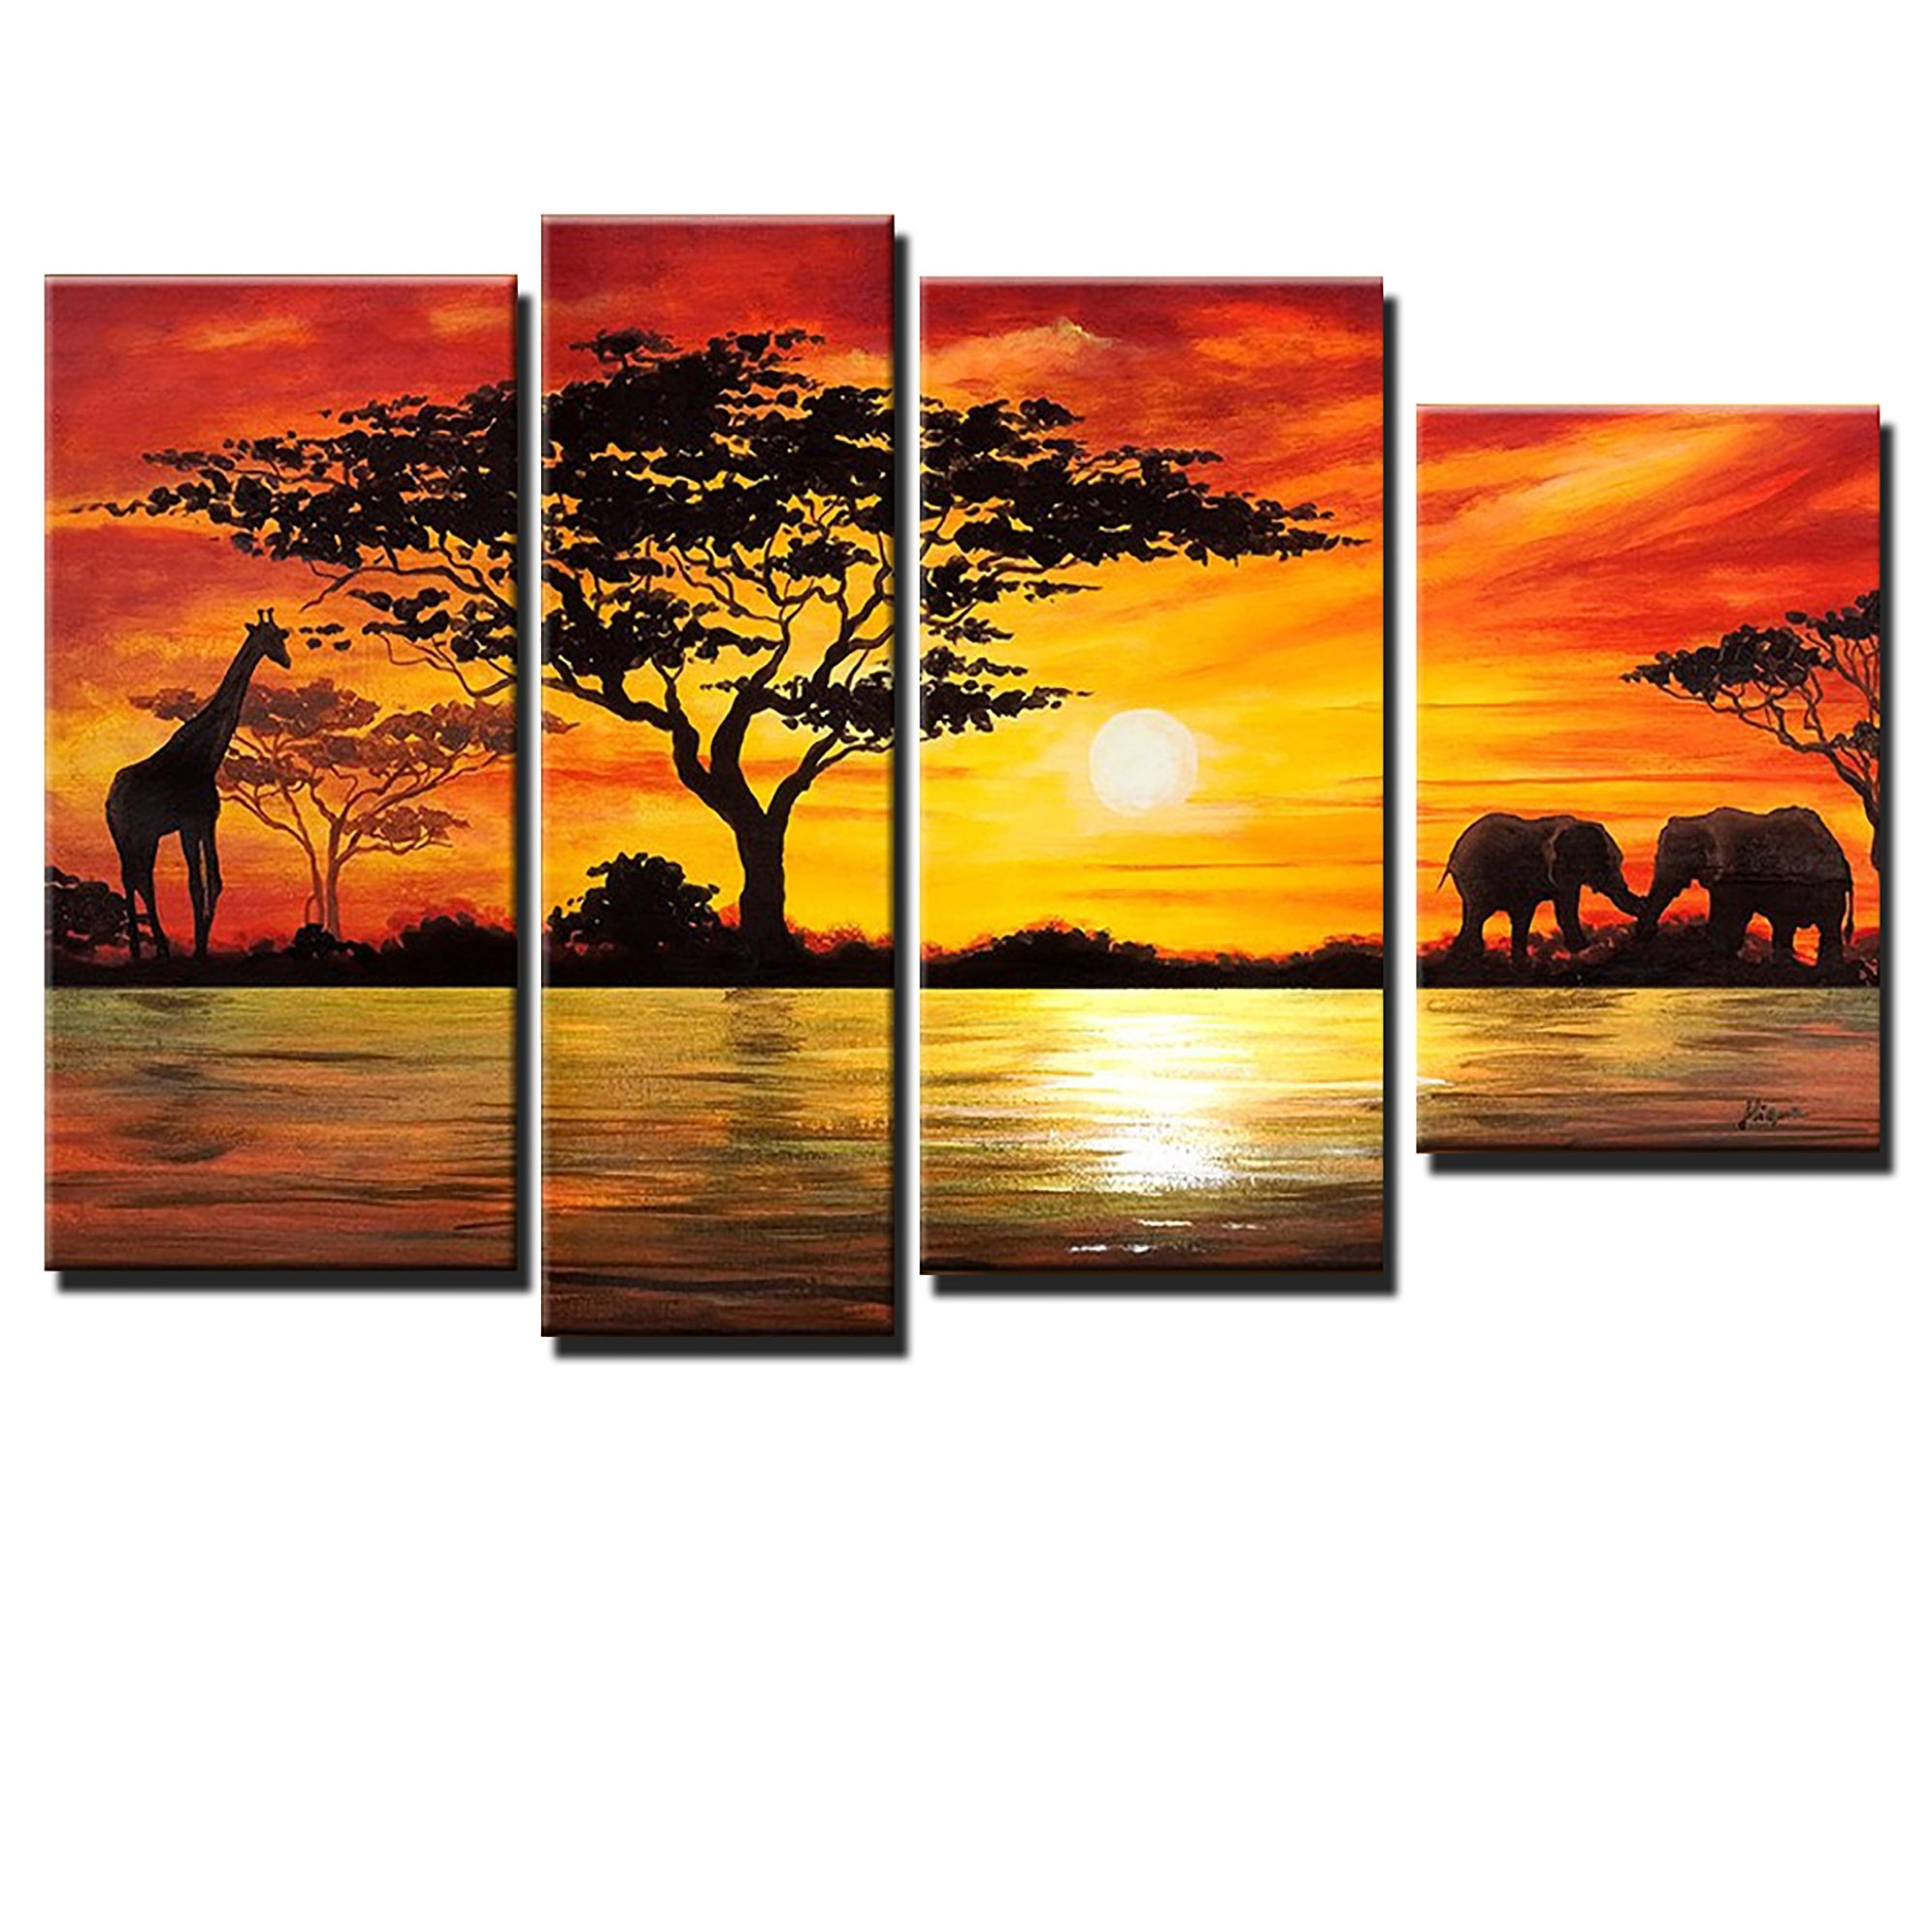 Beauty Of Africa Landscape Canvas Wall Art Oil Painting | Lovely Within Most Recent Abstract African Wall Art (View 10 of 20)